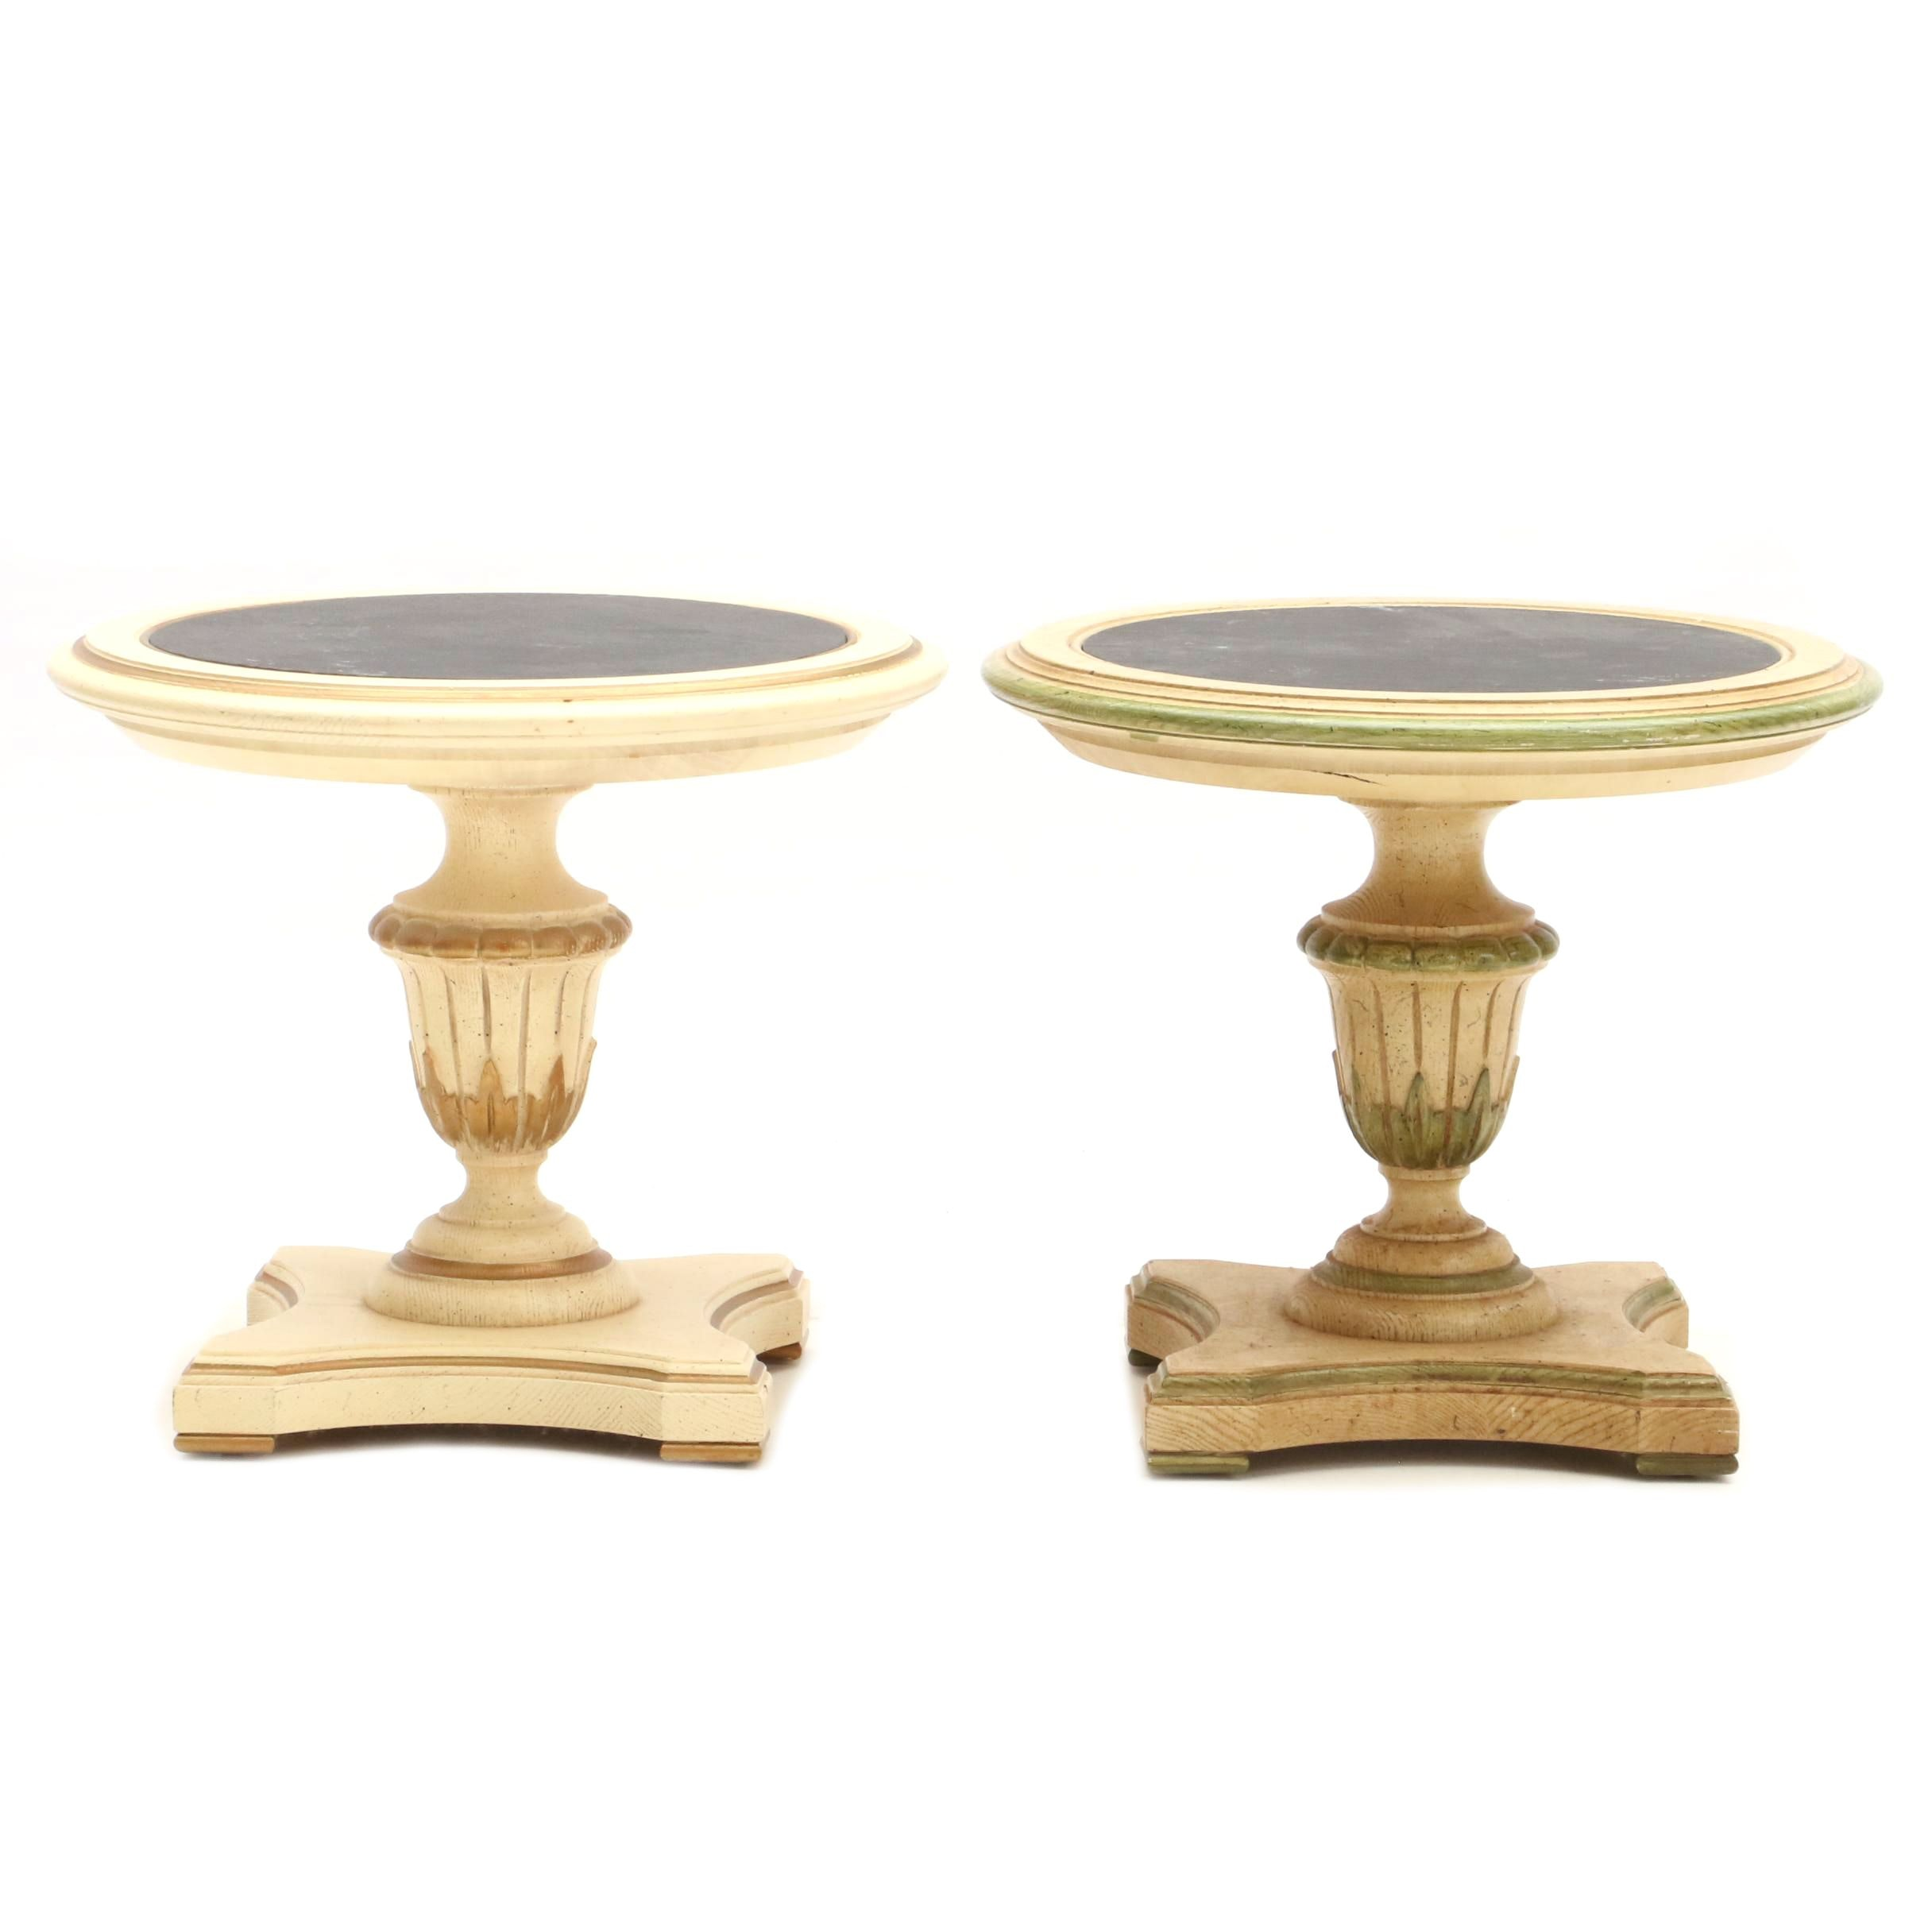 Two Oak Accent Tables with Faux Slate Tops